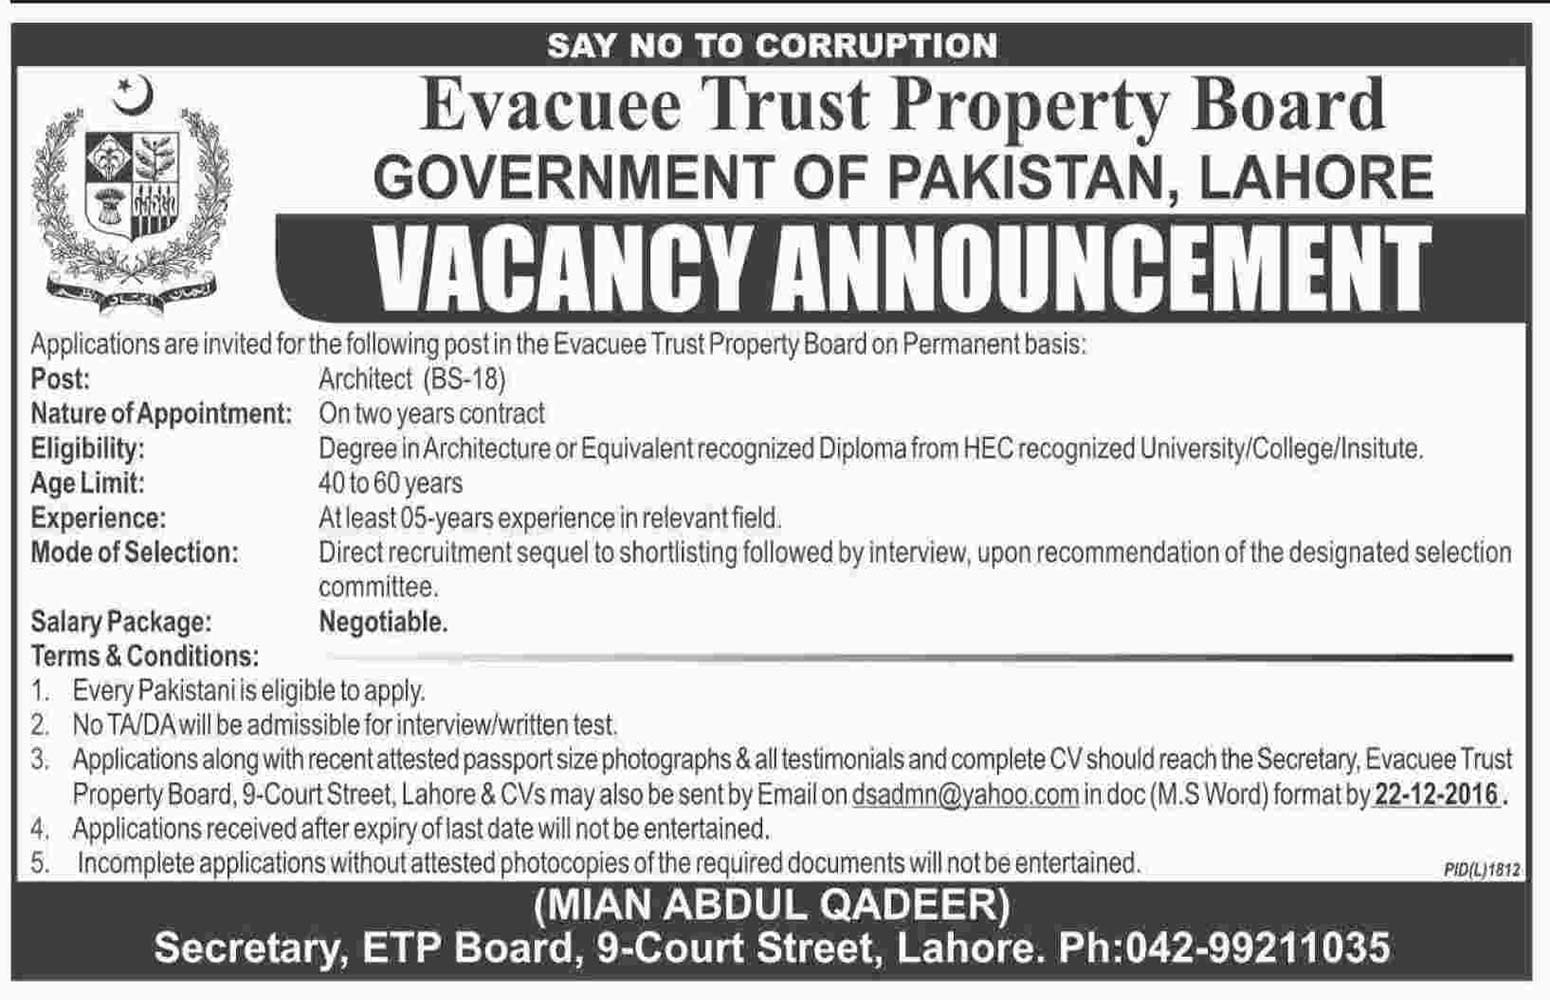 Evacuee Trust Property Board Careers in Lahore Arthritect Jobs